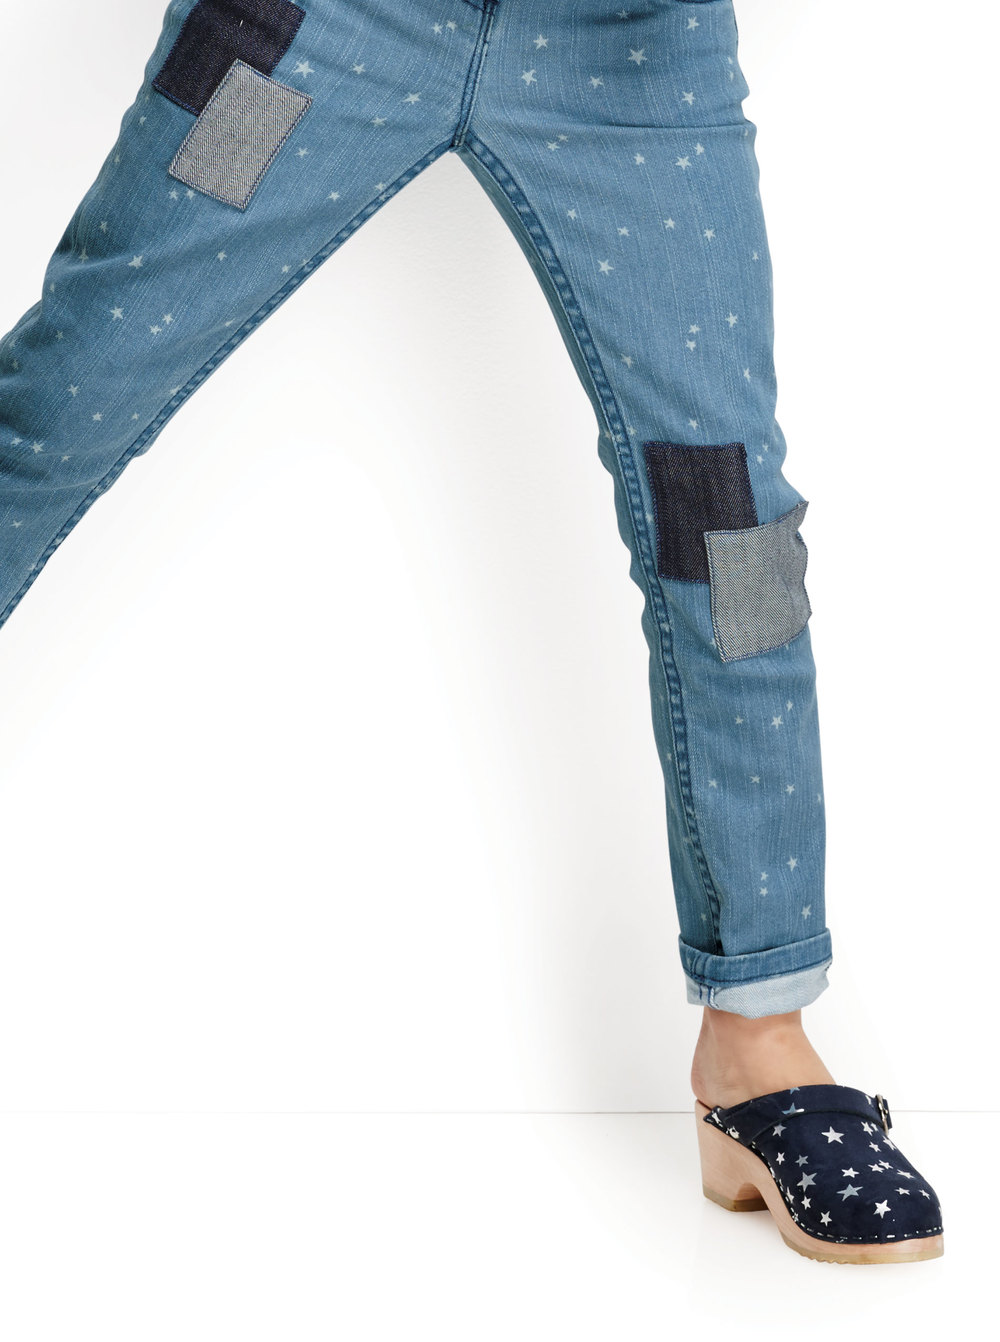 new-hanna-denim-girls-patchwork-jeans